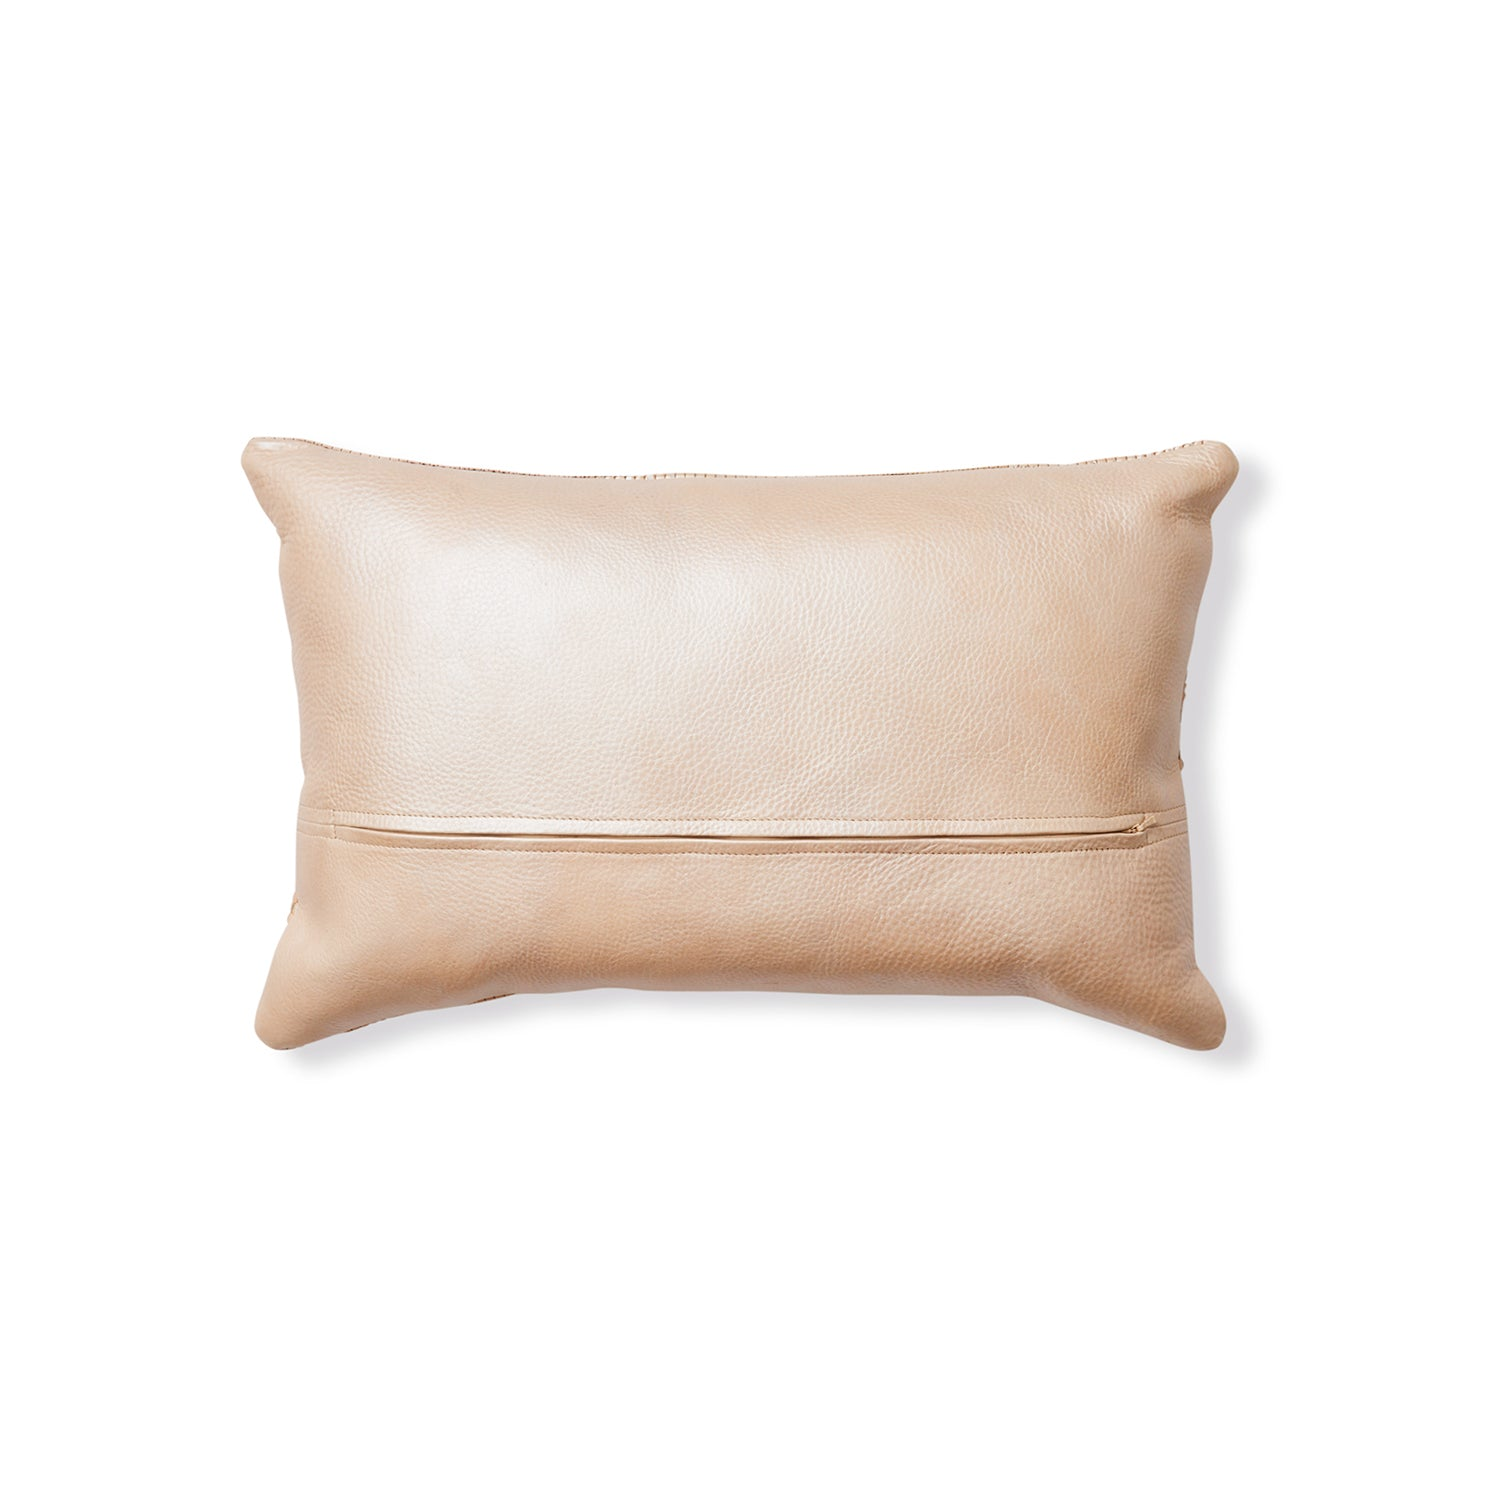 Mica Woven Leather Pillow